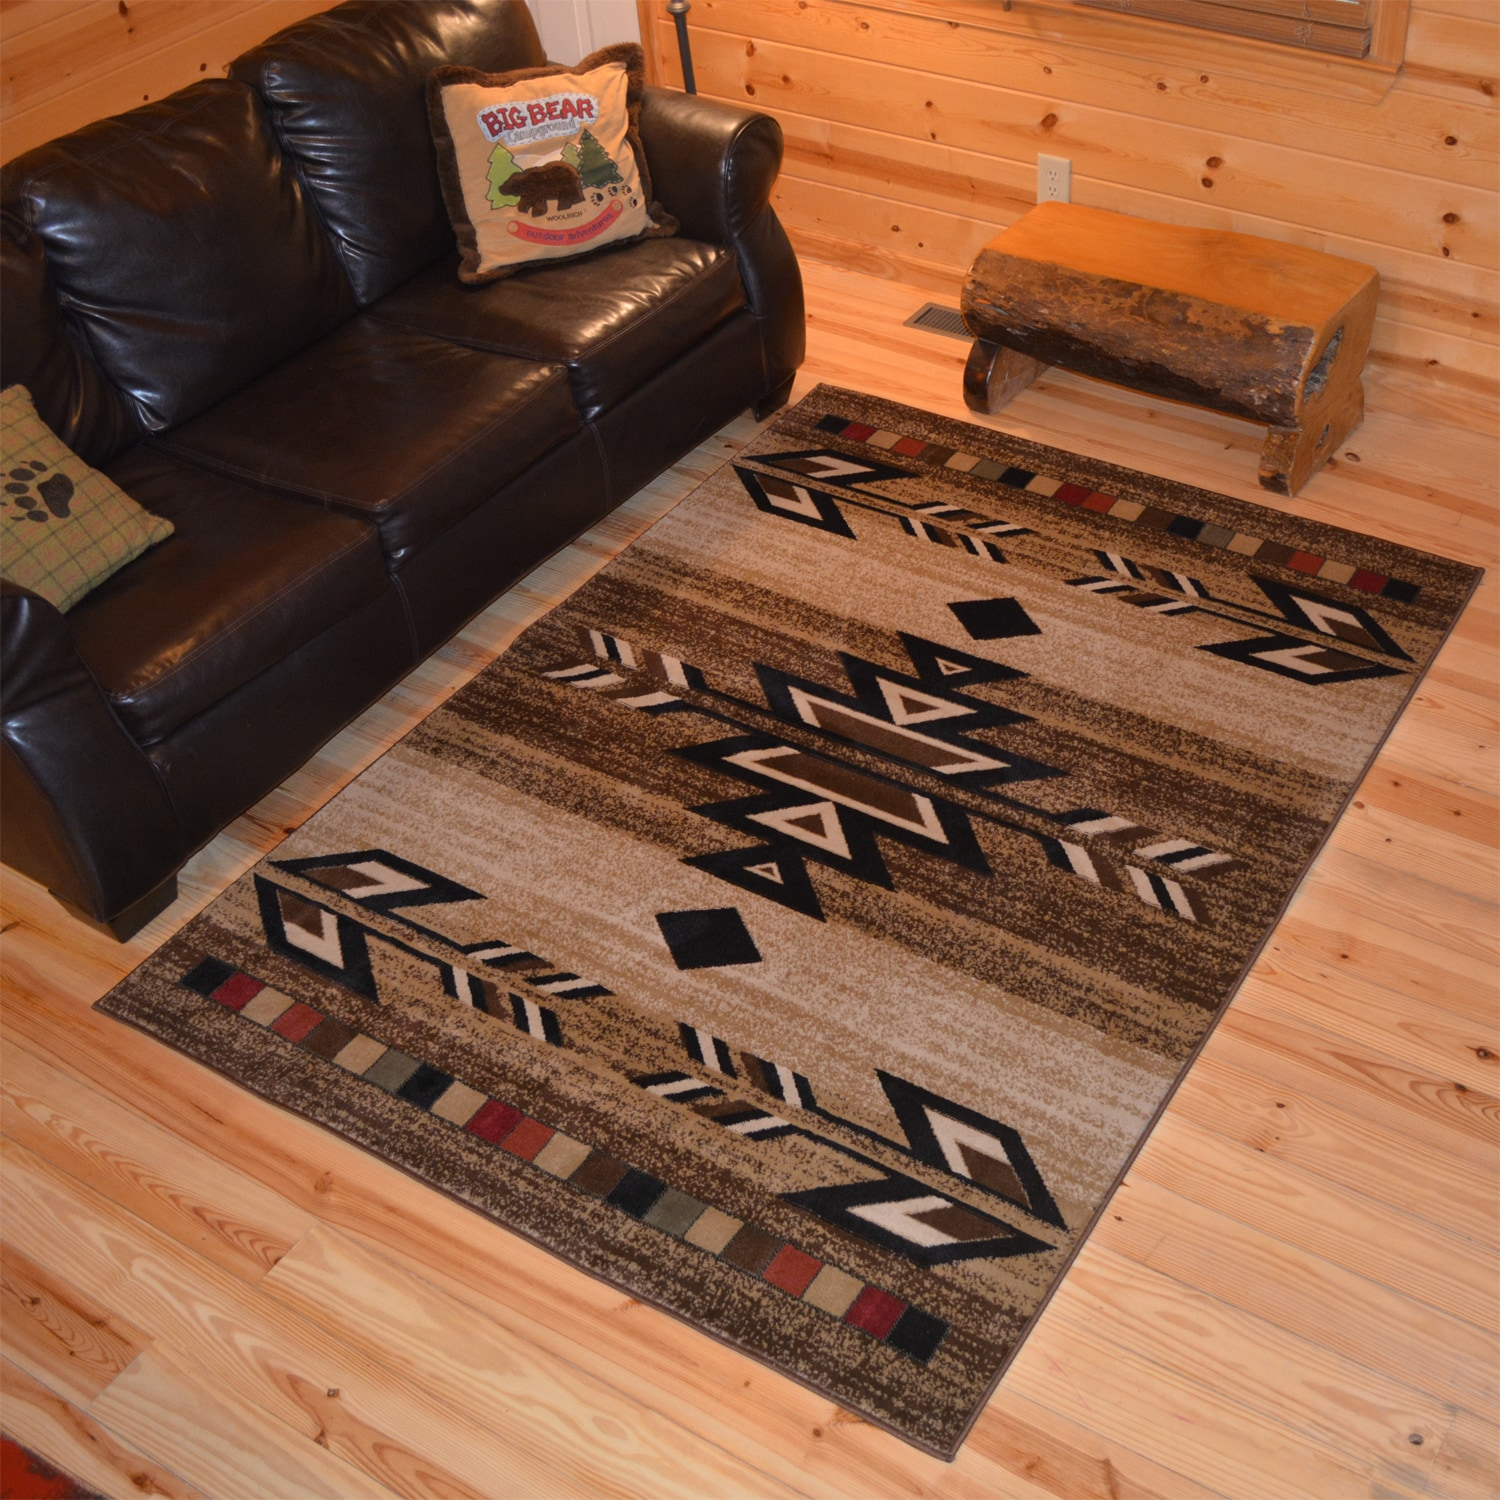 Details About Area Rug Carpet Southwestern Decor 7 10x9 10 Rustic Home Living Room New